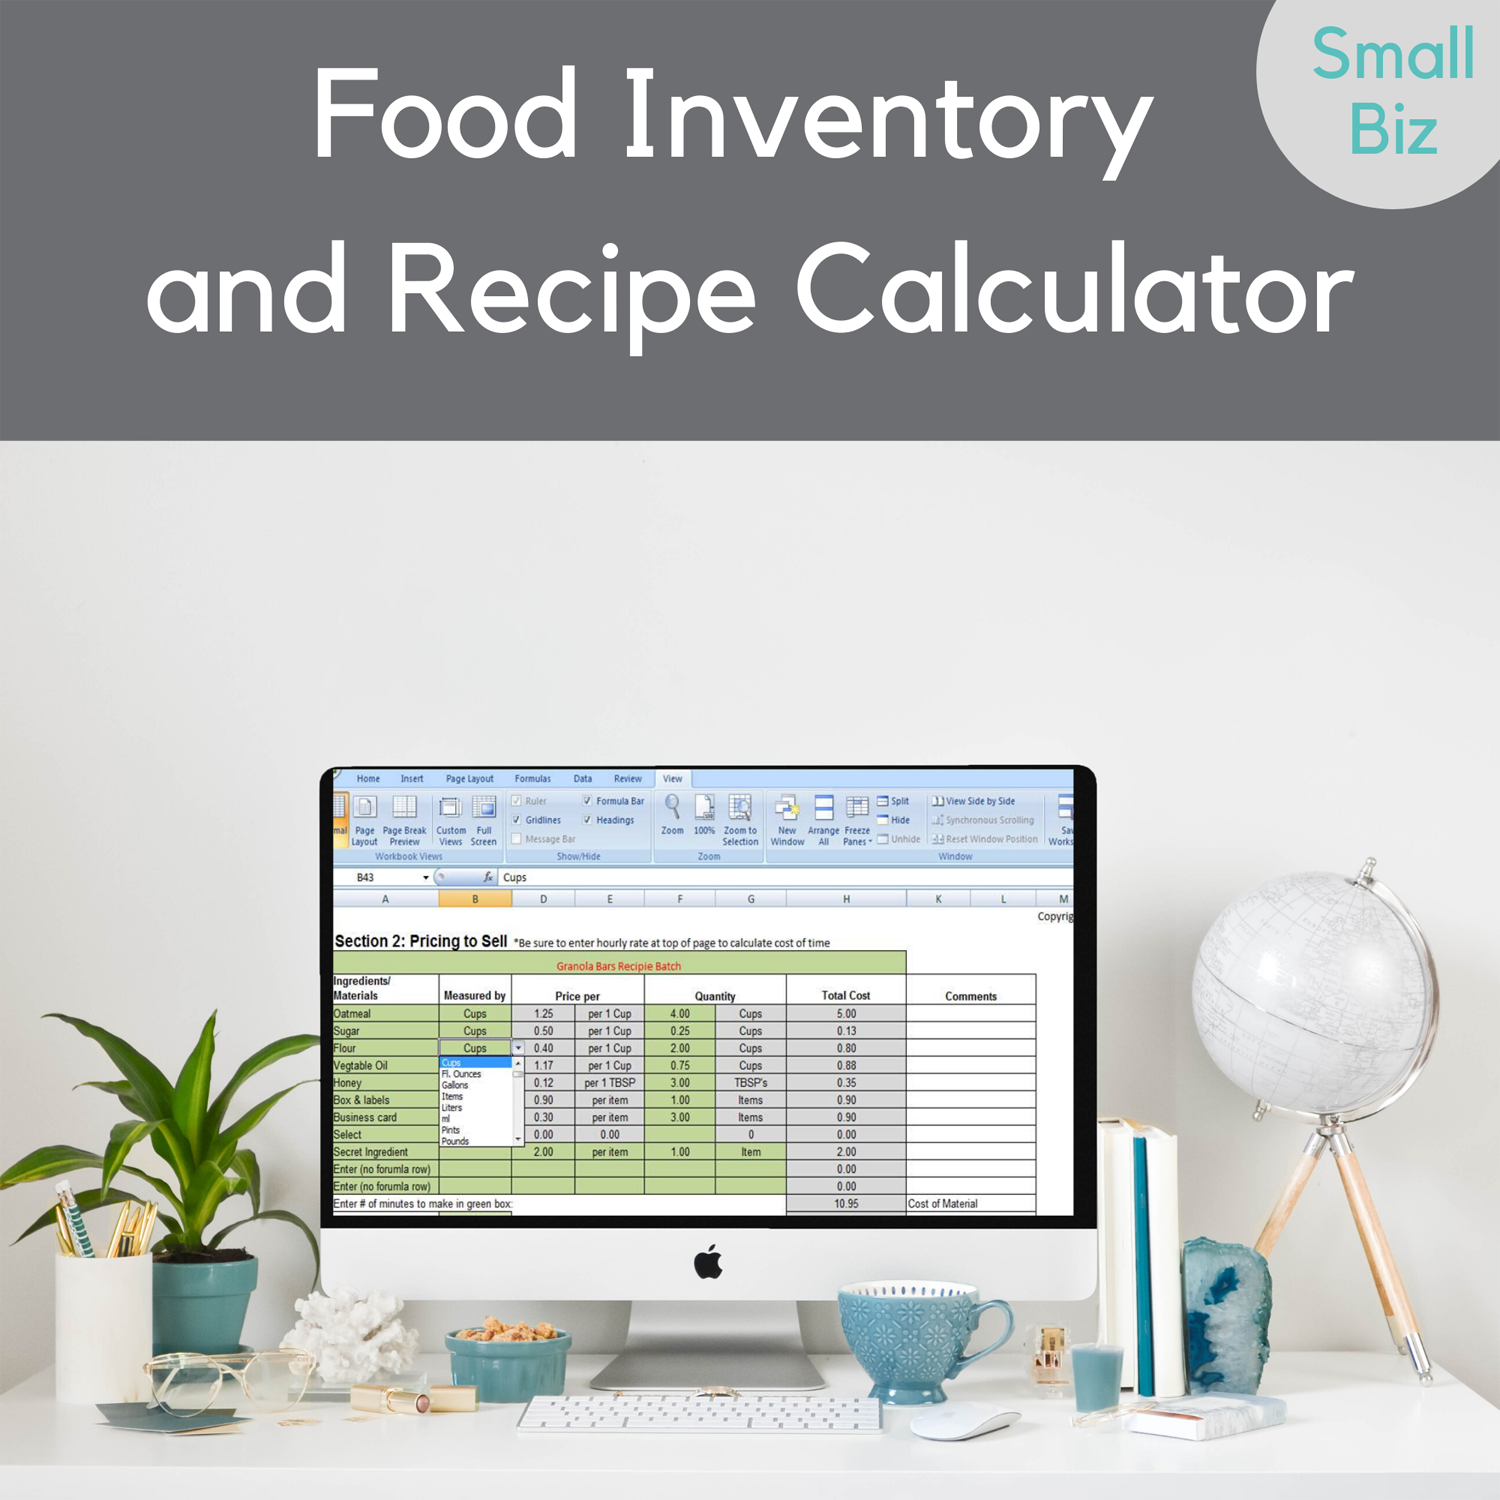 Food Invnetory conversion worksheet 2